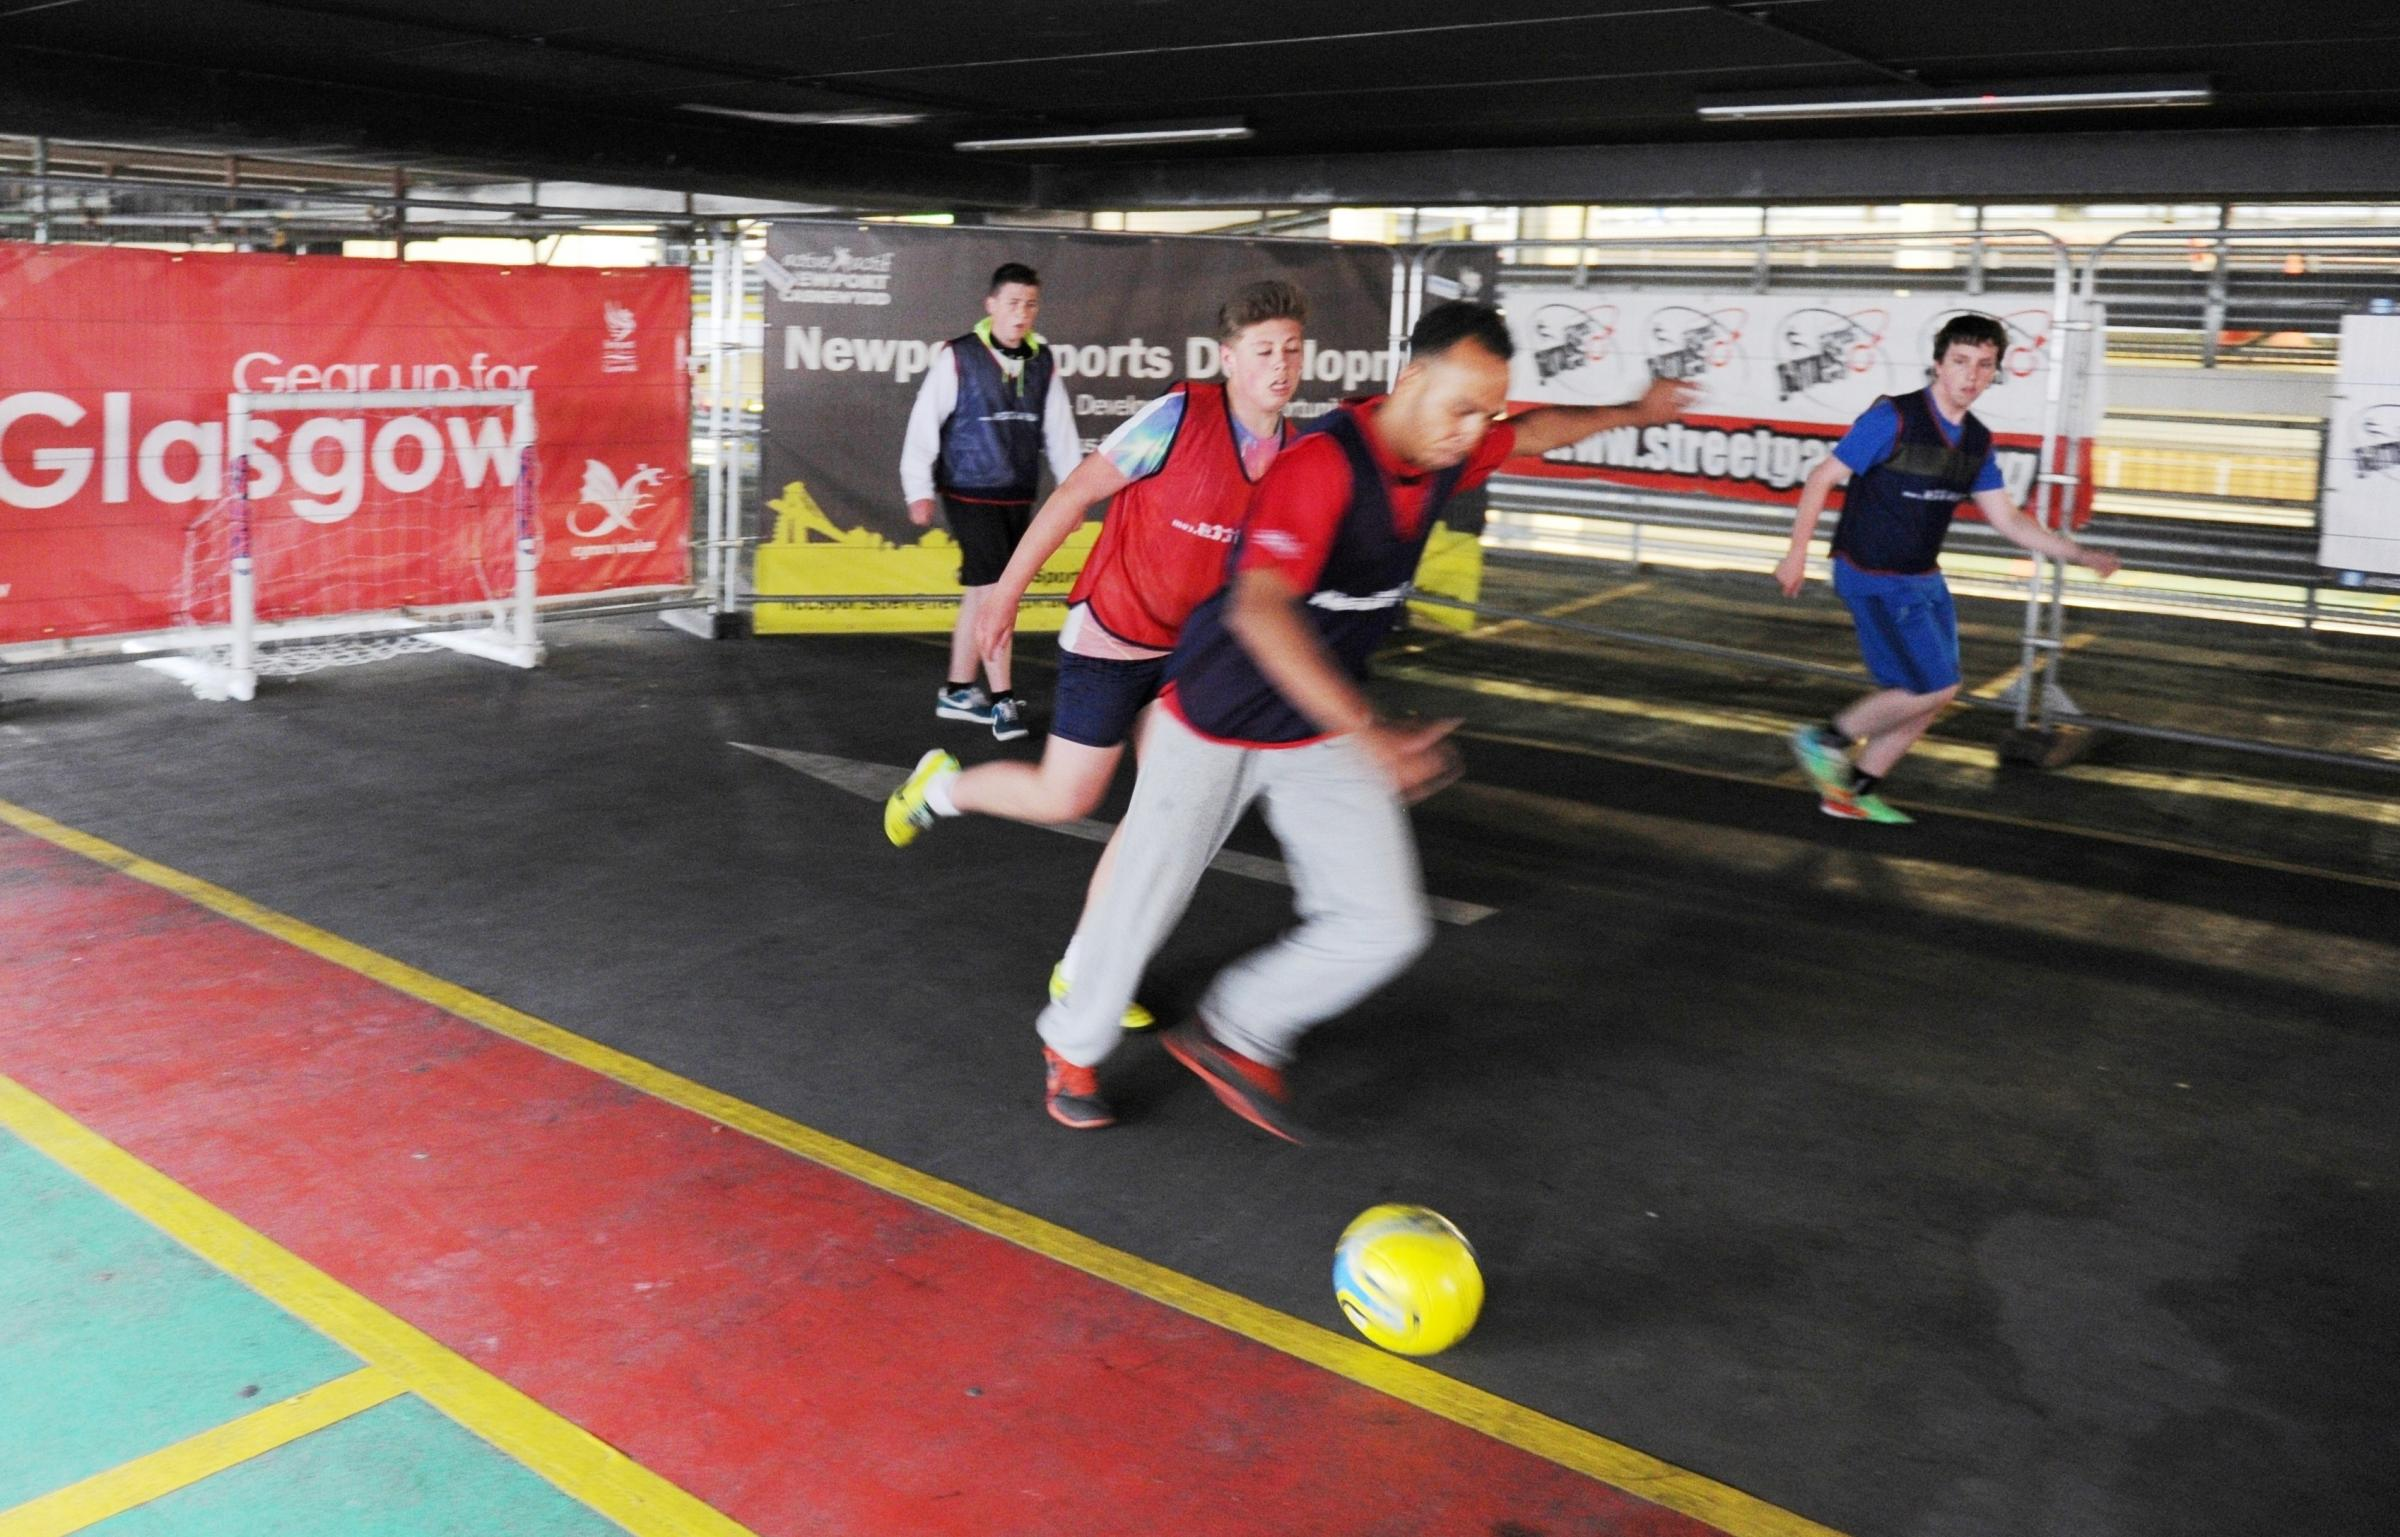 Newport car park becomes sports ground